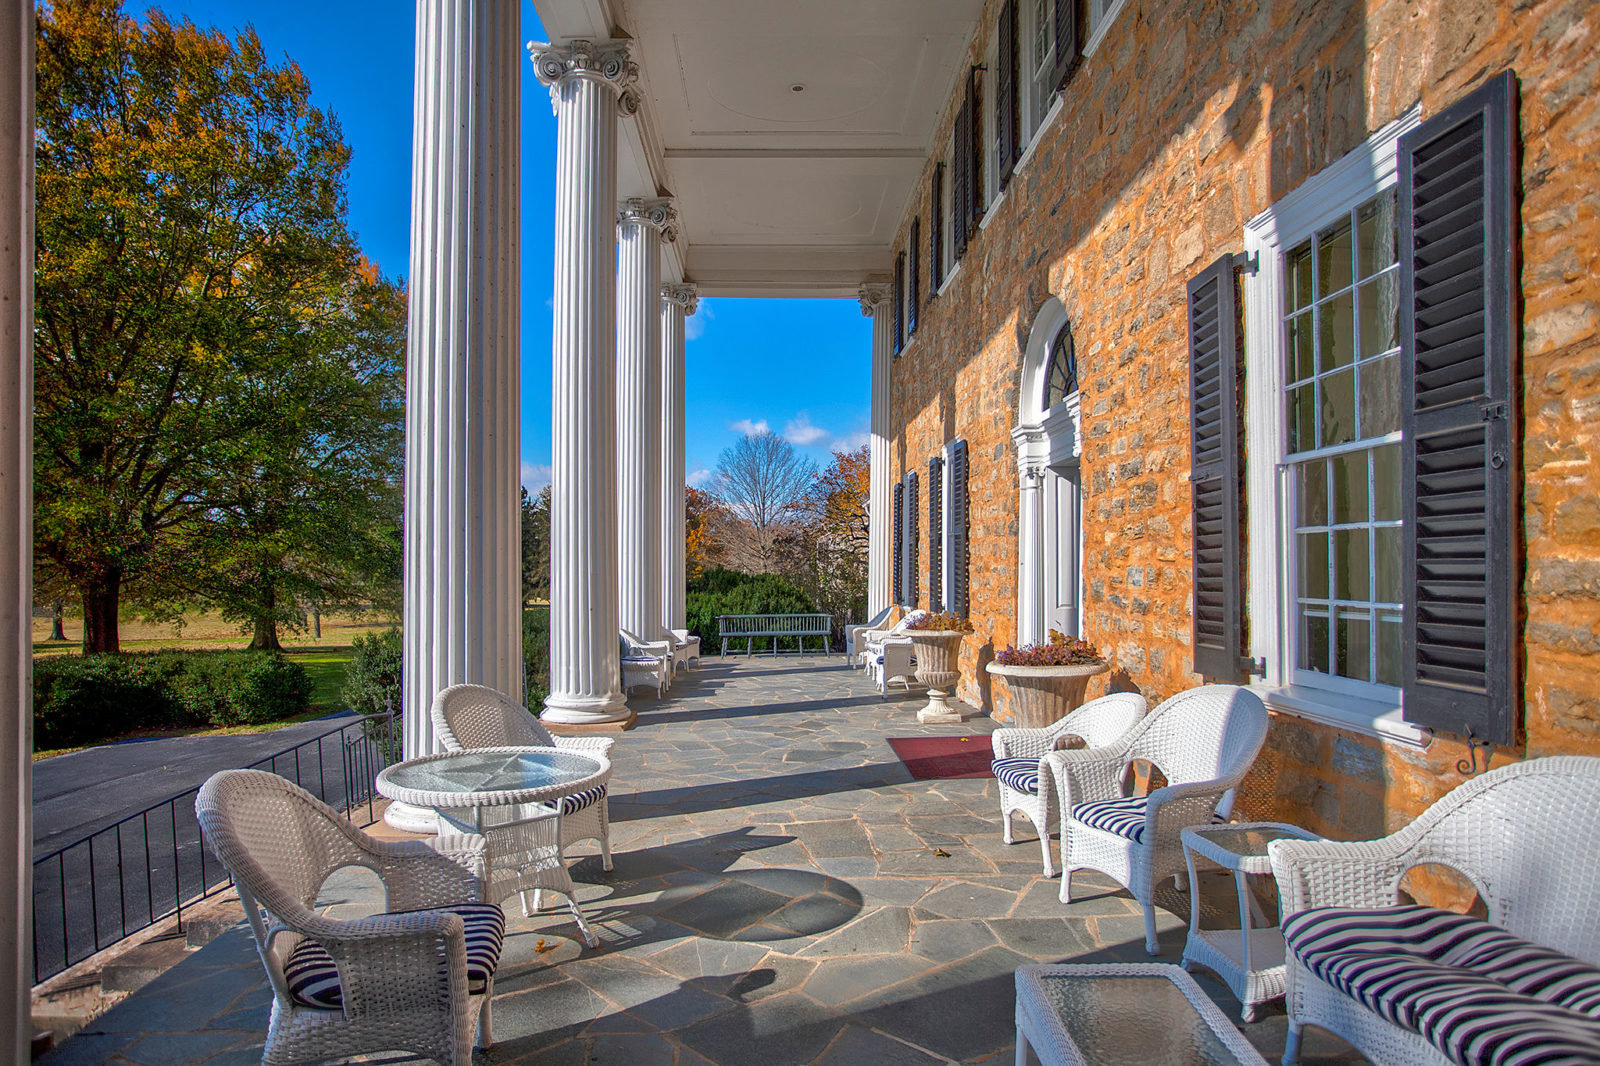 The portico at Carter Hall in Millwood, Virginia. Designed by William Thornton, architect of the U.S. Capitol Bulding.